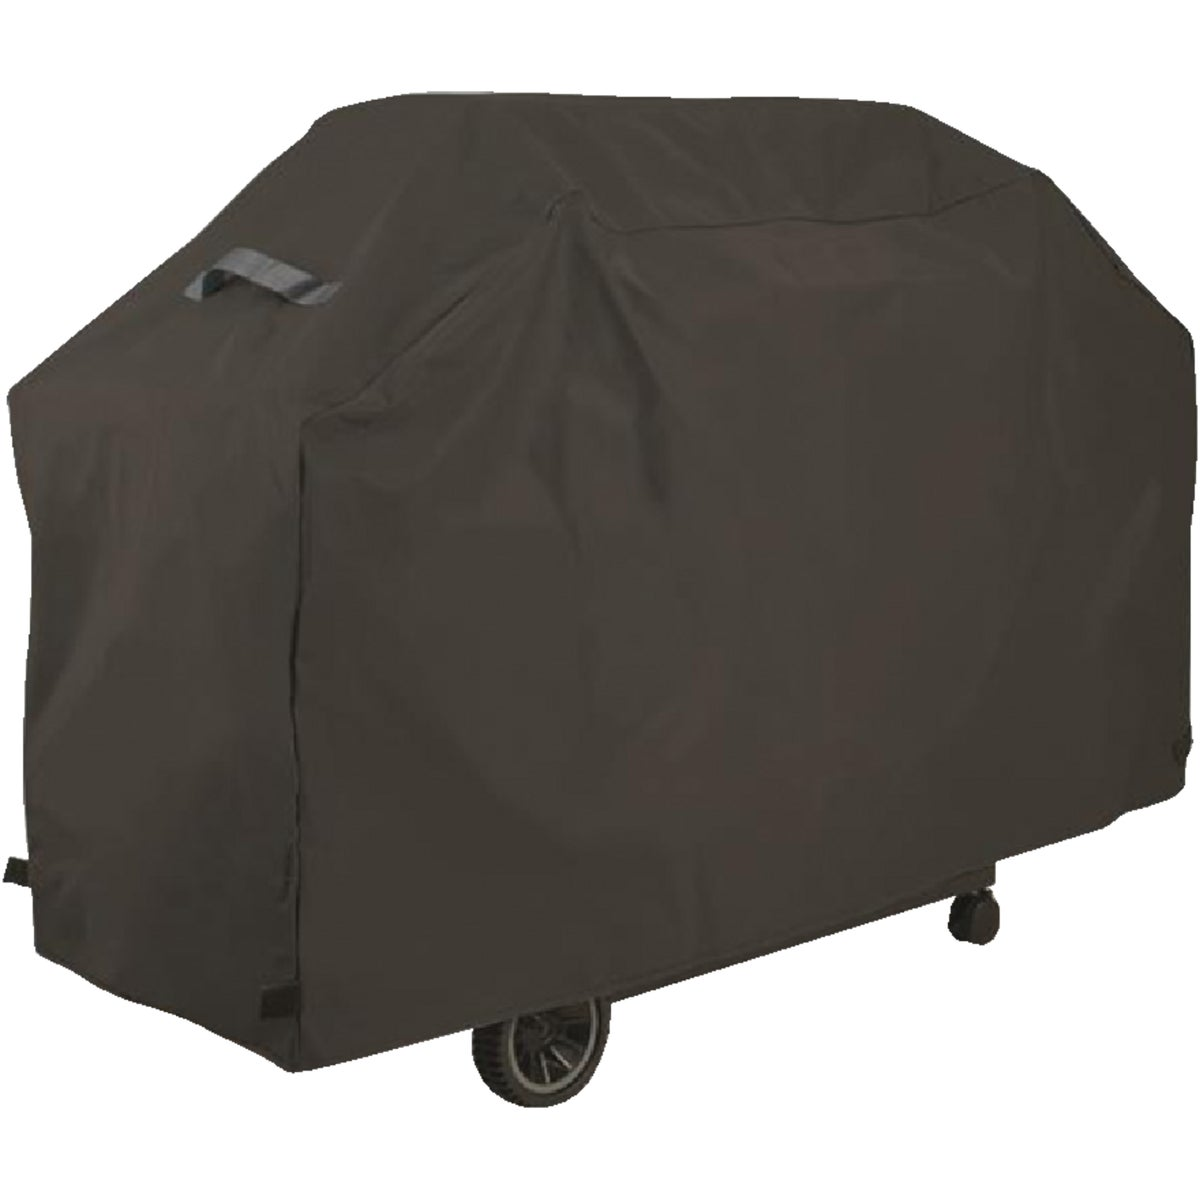 GRILL COVER - 50574 by Onward Multi Corp  N